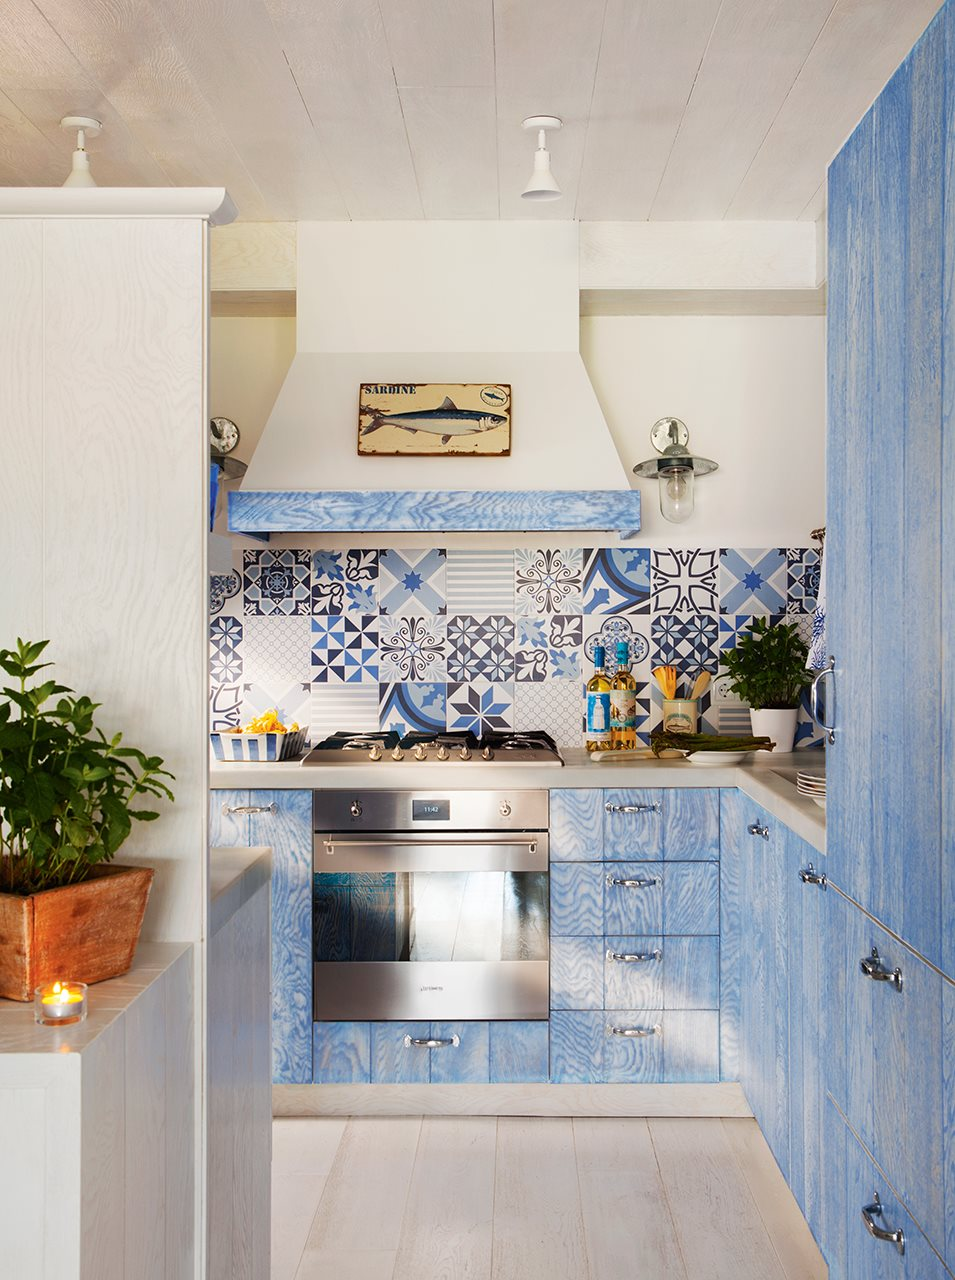 A spanish dreamy summer home adorable home - Como decorar una cocina rustica ...